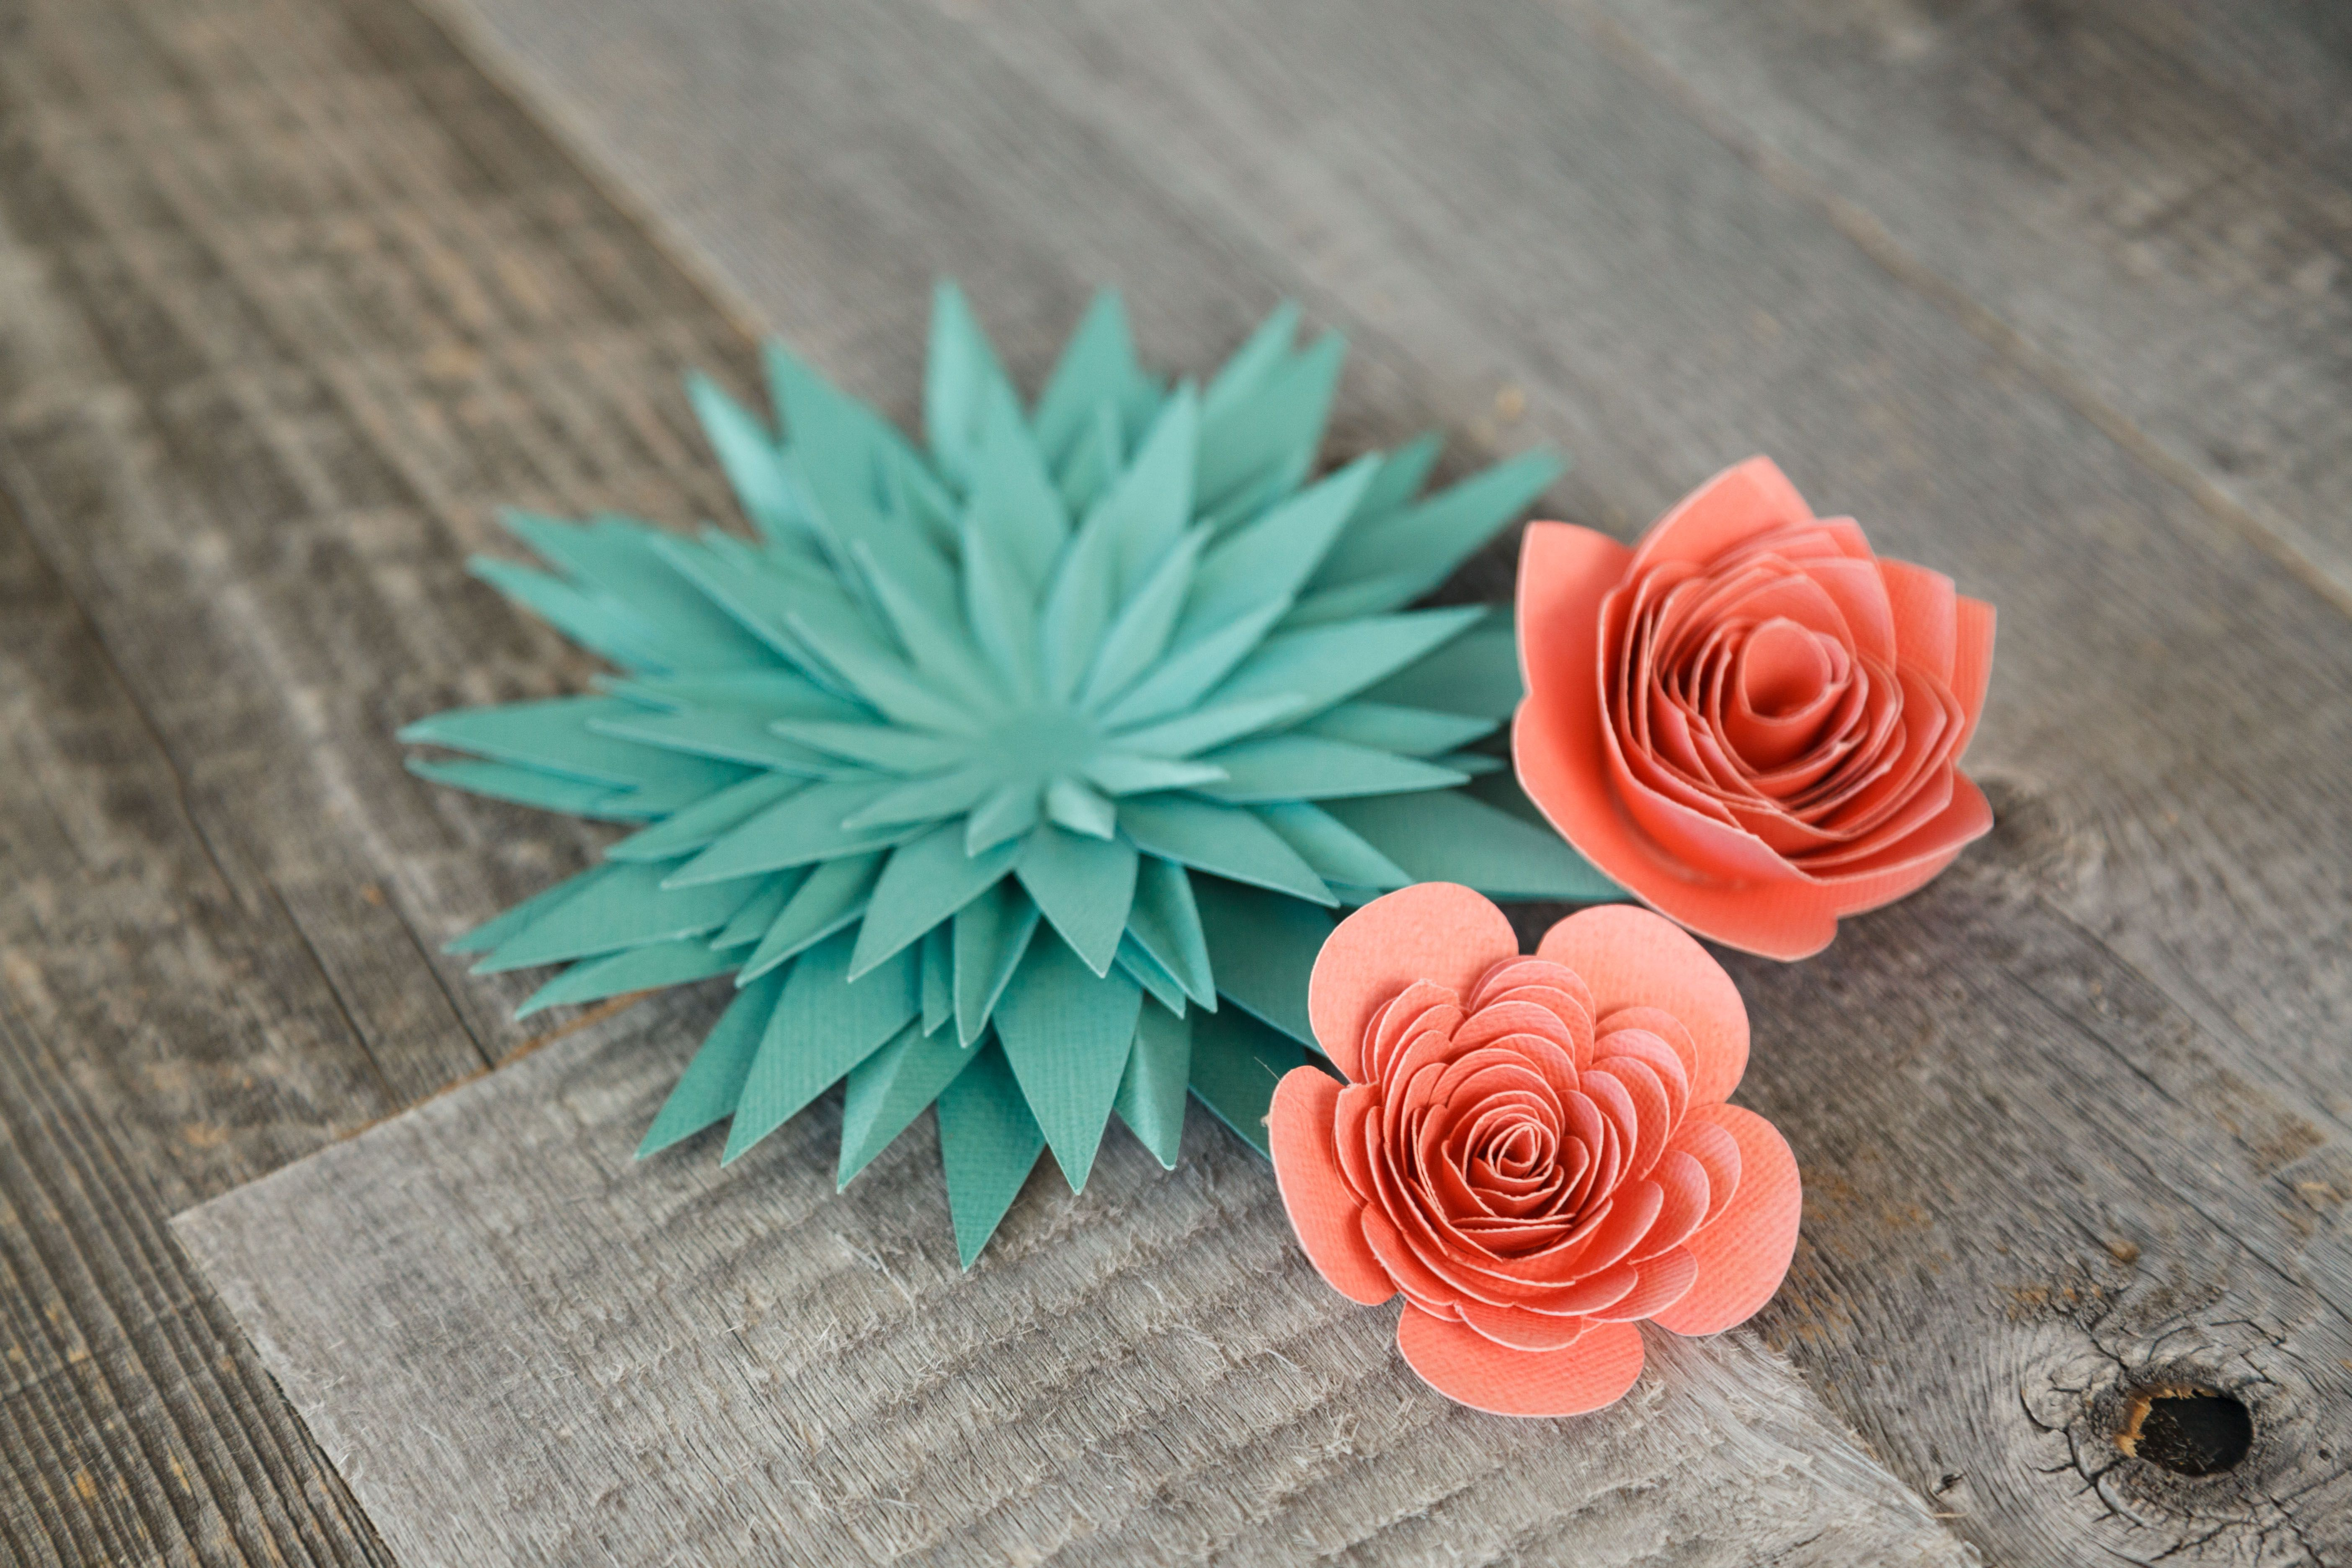 Paper Flowers Make Them Now With The Cricut Explore Air Machine In